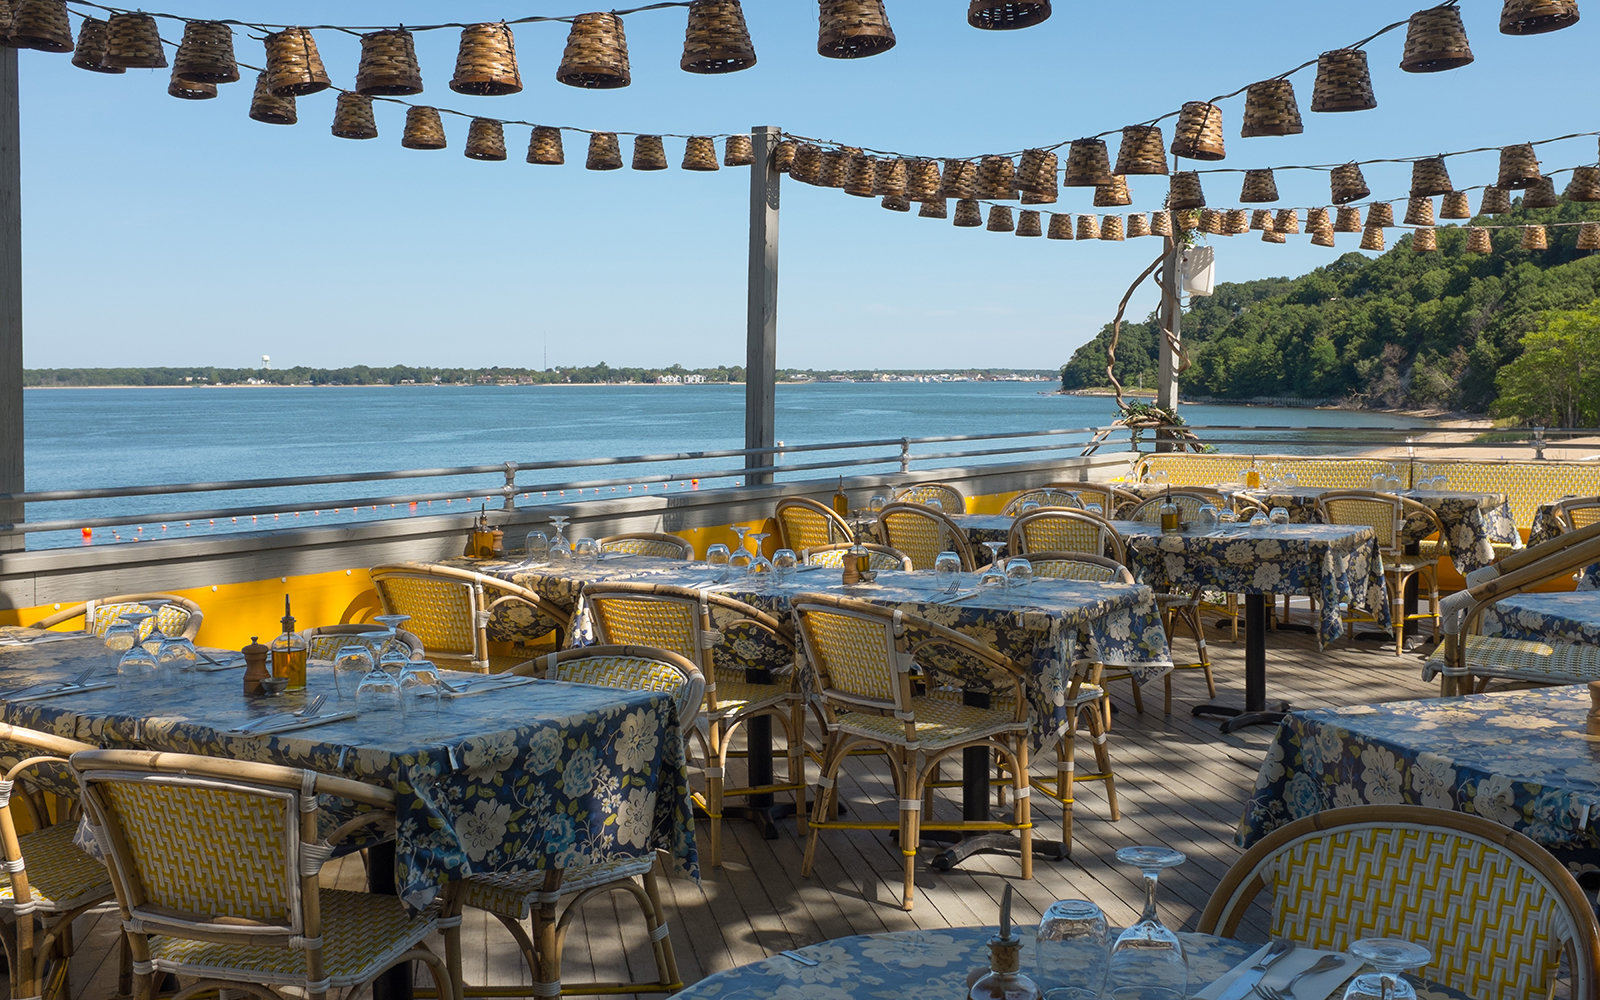 Shelter Island, NY: Where to Stay and Eat